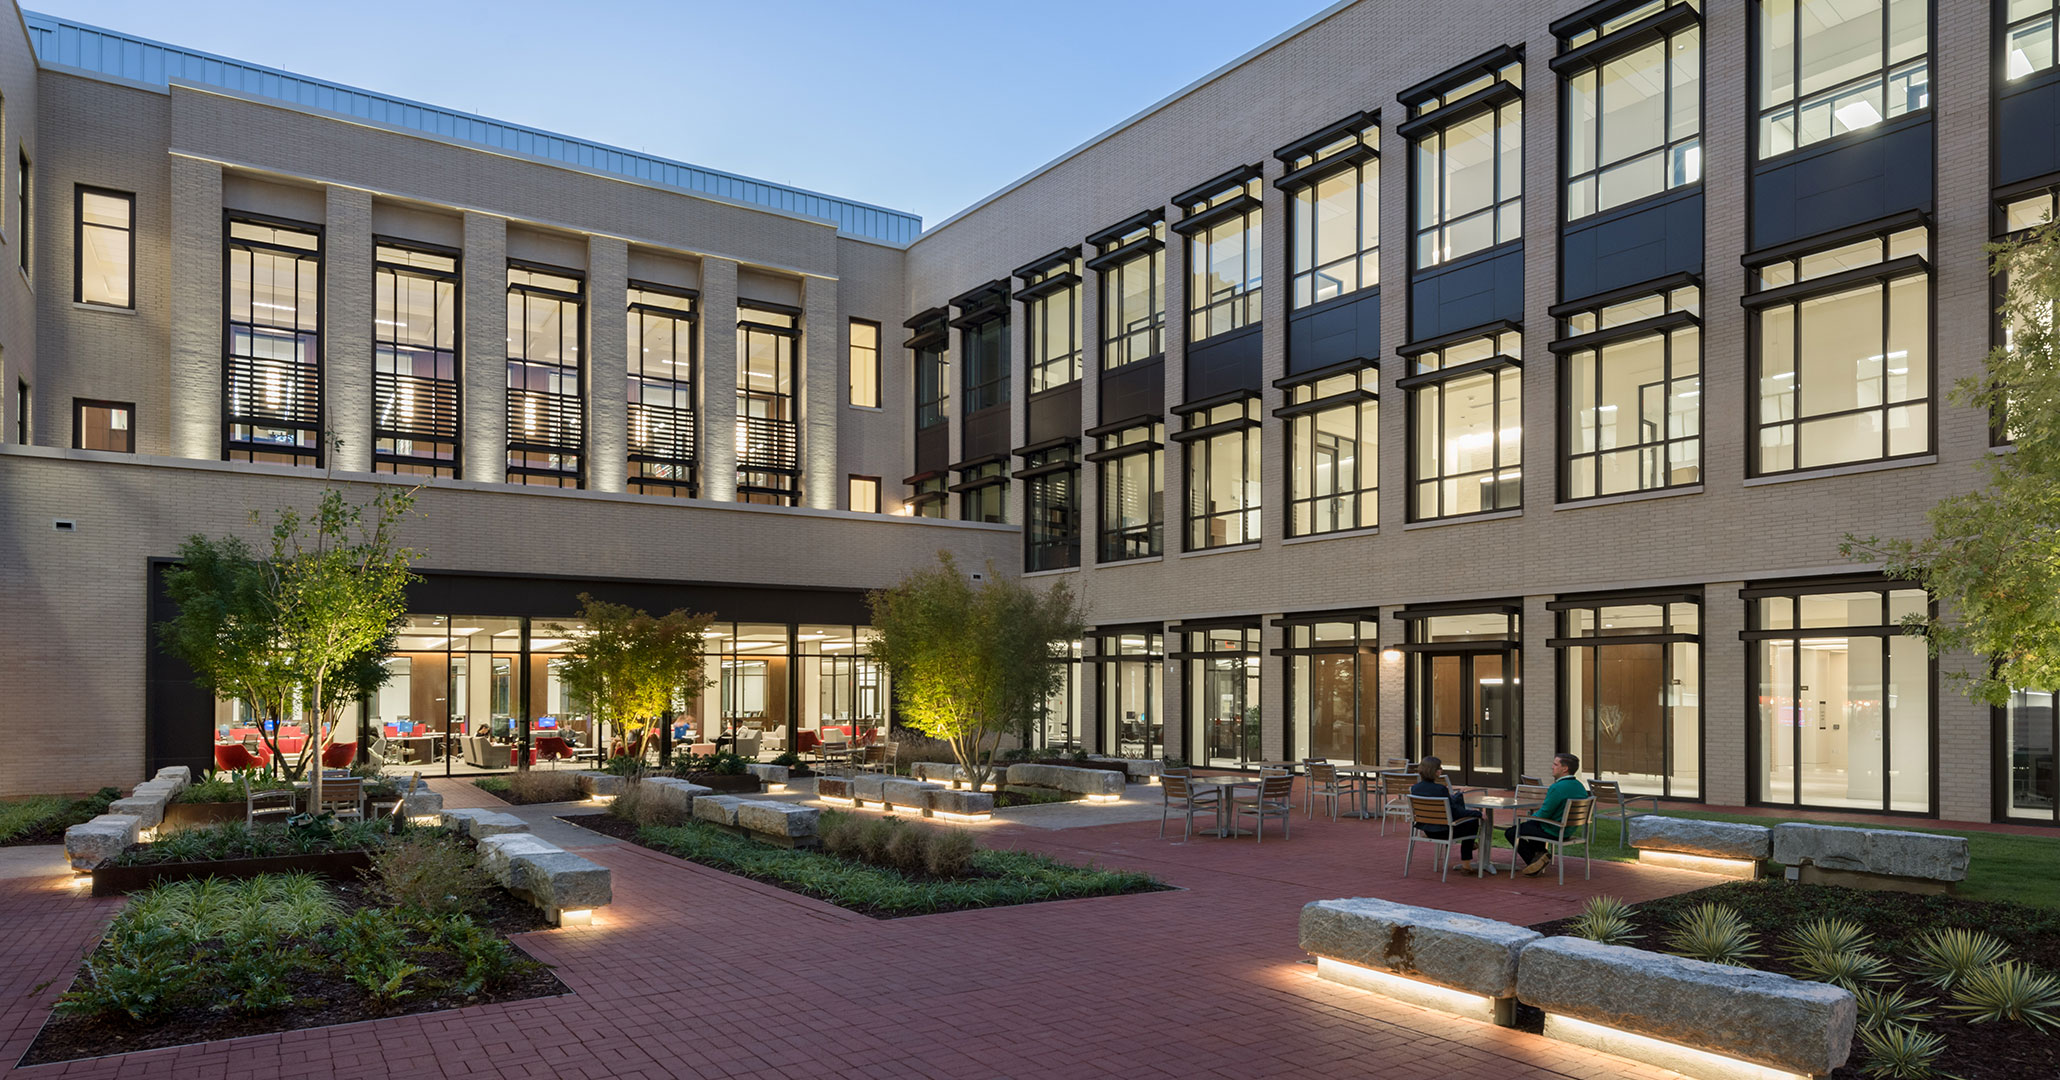 UofSC worked with Boudreaux architects to design the new Law School building.